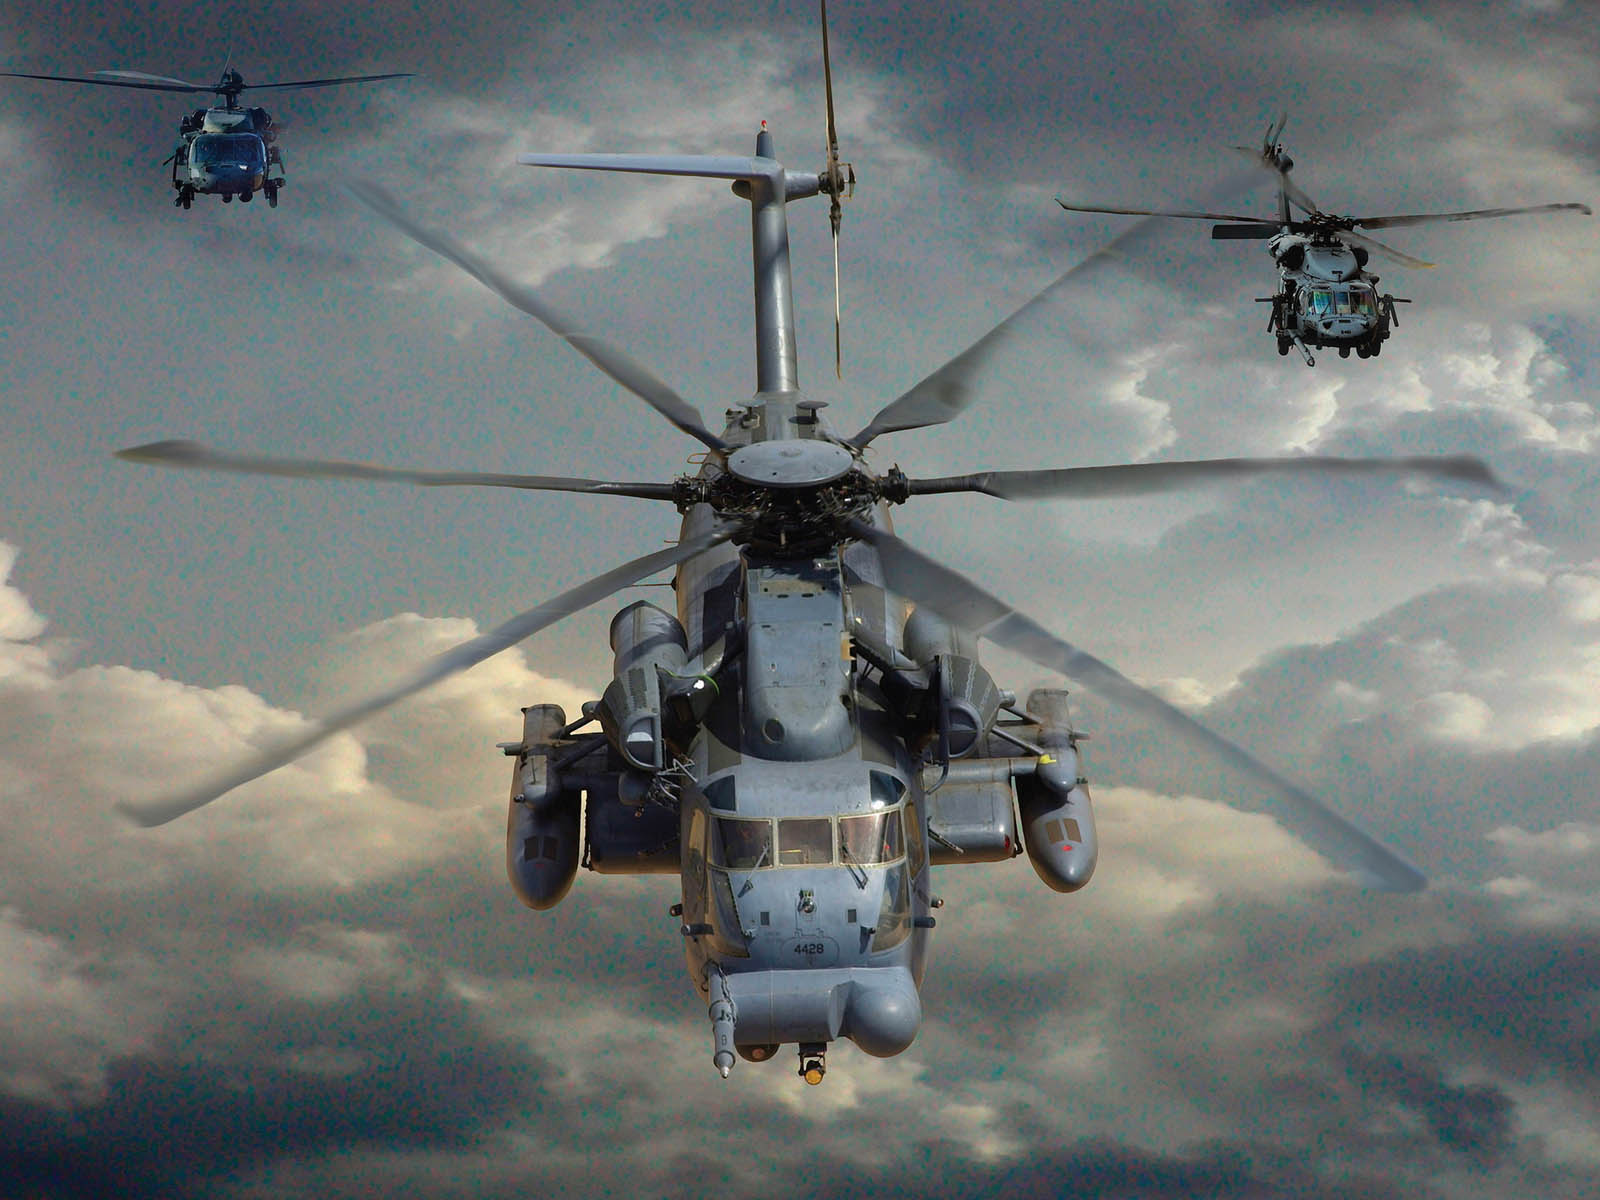 wallpapers mh 53 Pave Low Helicopter Wallpapers 1600x1200